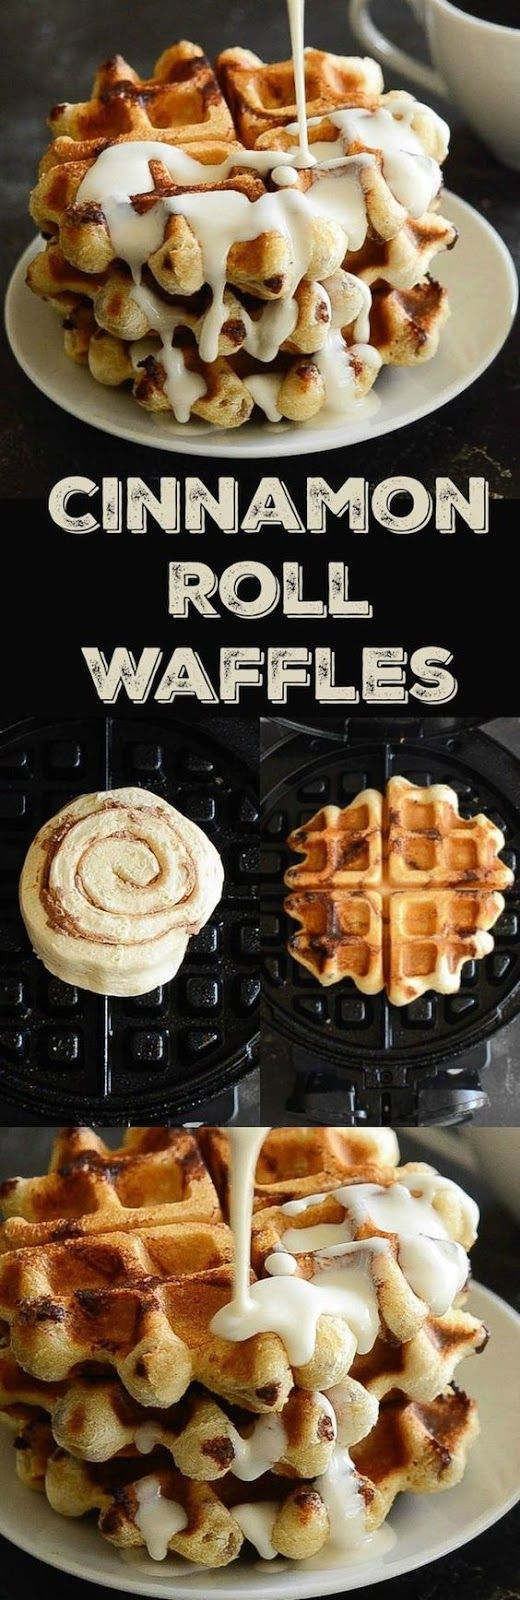 CINNAMON ROLL WAFFLES WITH MAPLE CREAM CHEESE SYRUP | Food And Cake Recipes